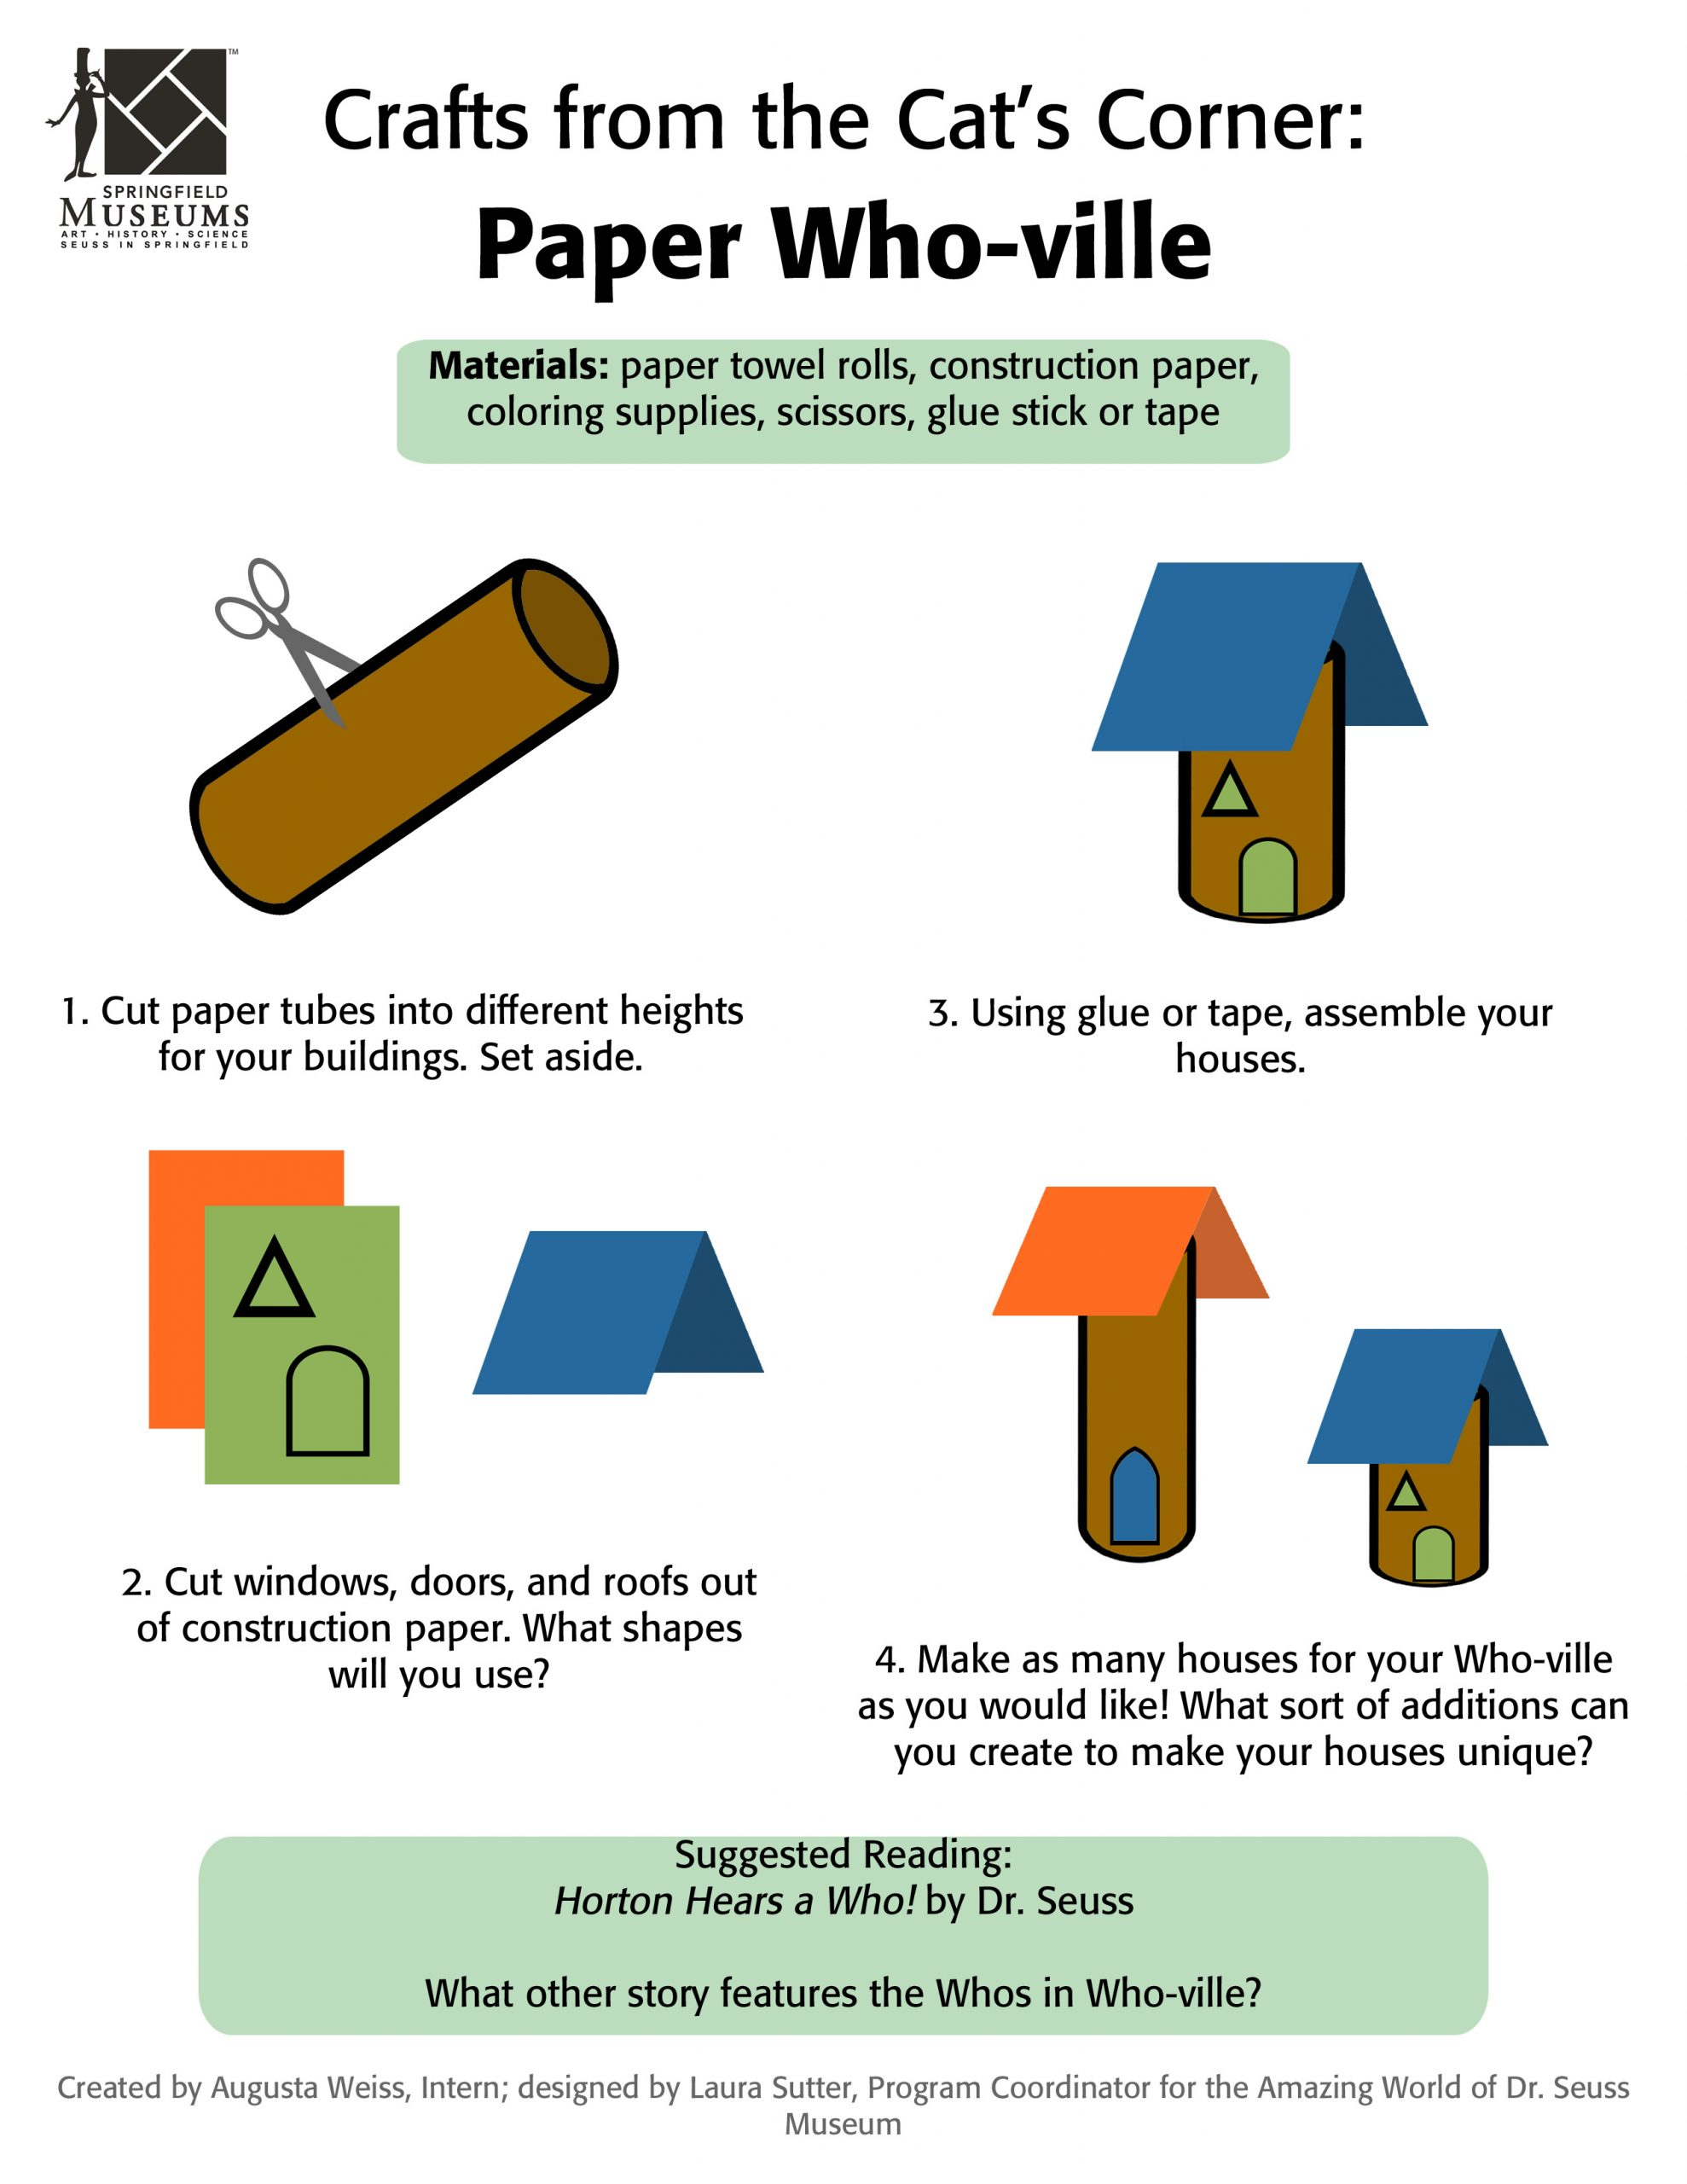 Crafts from the Cat's Corner: Paper Who-ville Activity Instructions